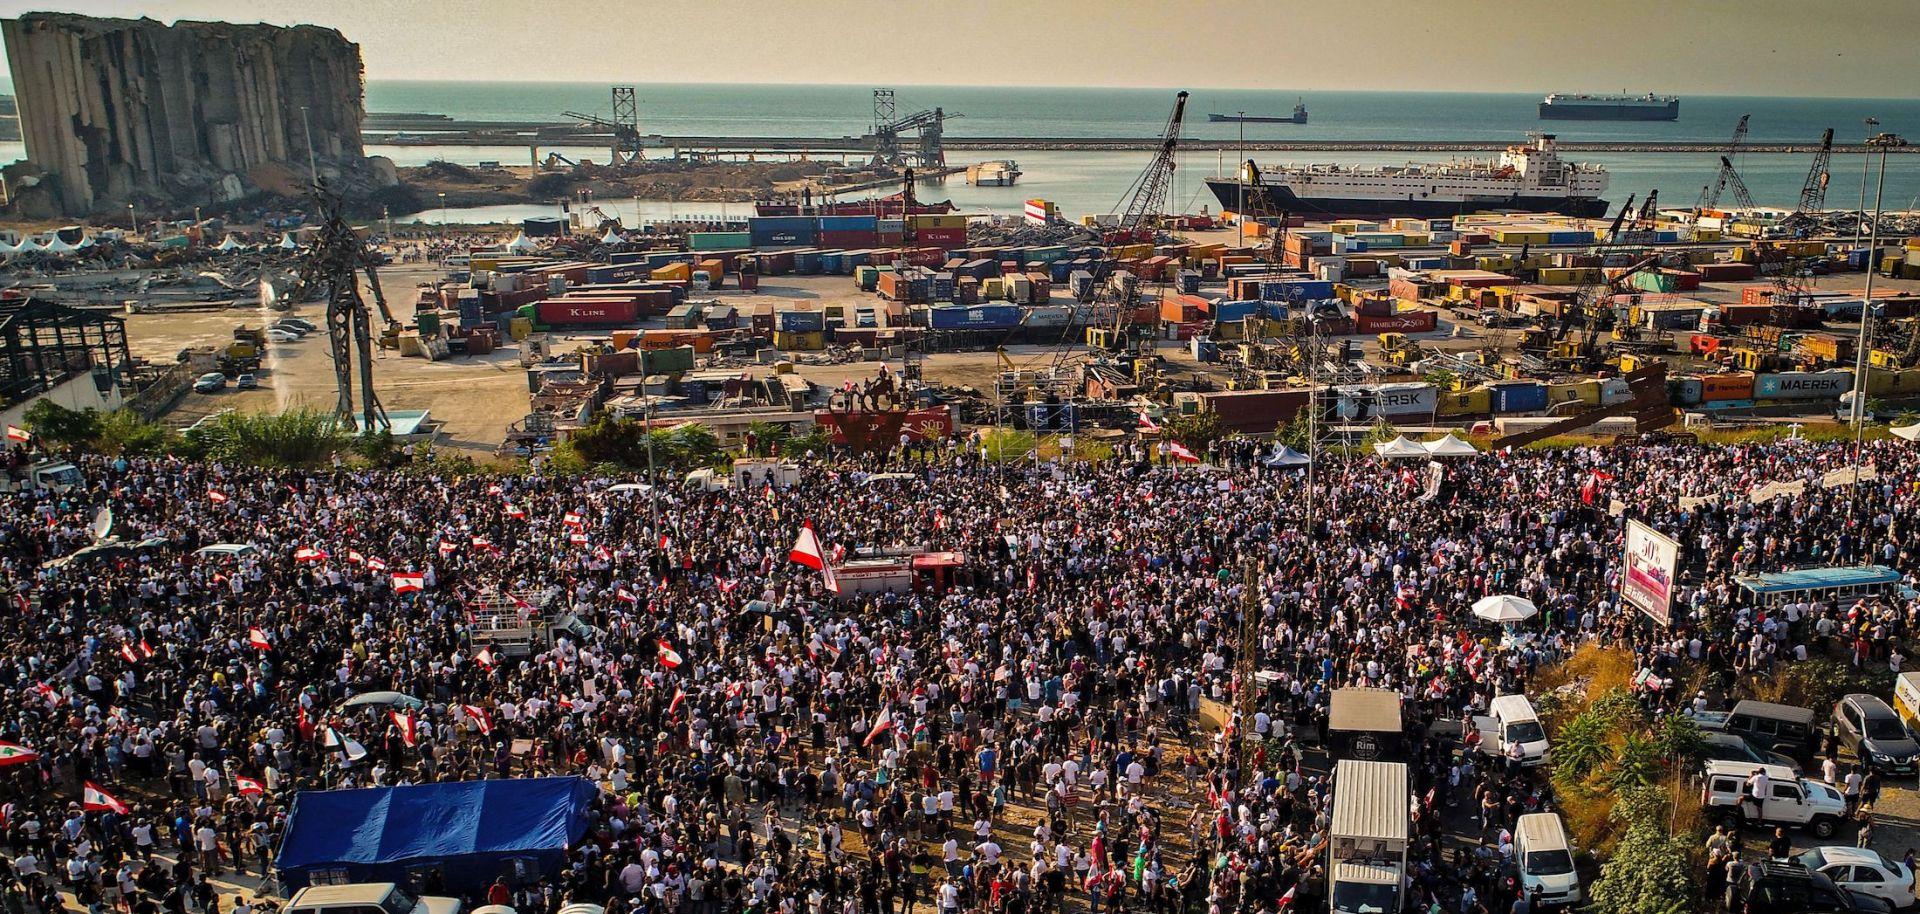 An aerial photo taken on Aug. 4, 2021, shows demonstrators gathered outside the port in Beirut, Lebanon, one year after the explosion ravaged the capital city.